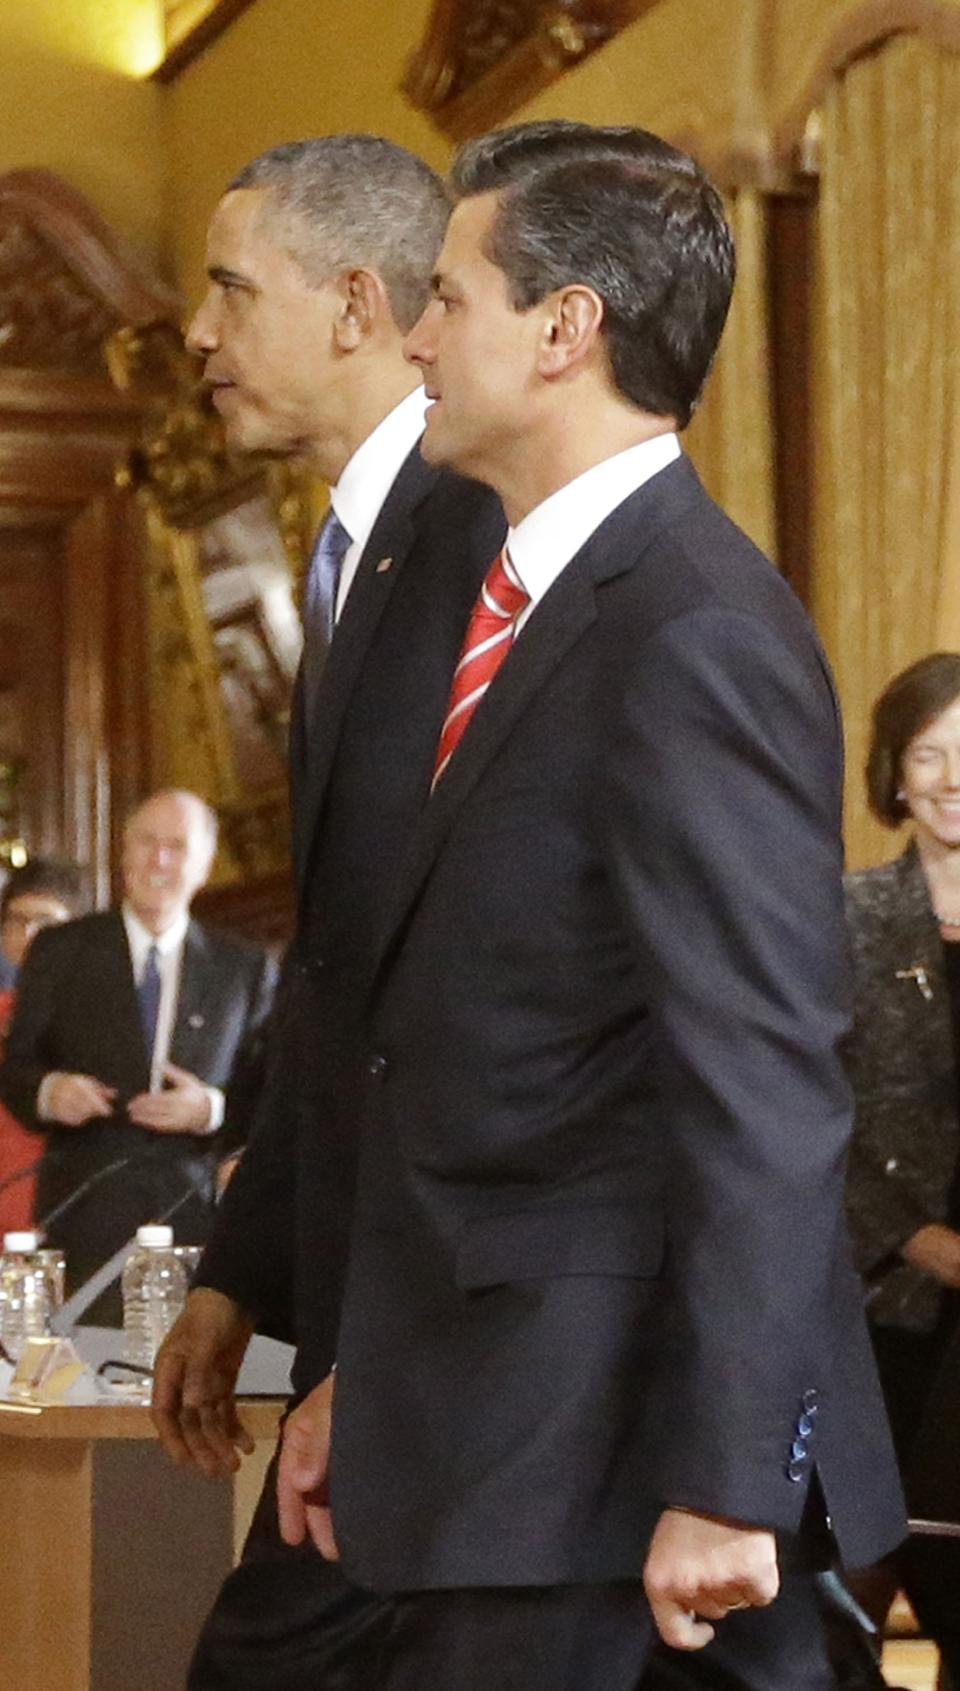 President Barack Obama and Mexico's President Enrique Pena Nieto arrive for their bilateral meeting at the Palacio Nacional in Mexico City, Thursday, May 2, 2013. (AP Photo/Pablo Martinez Monsivais)